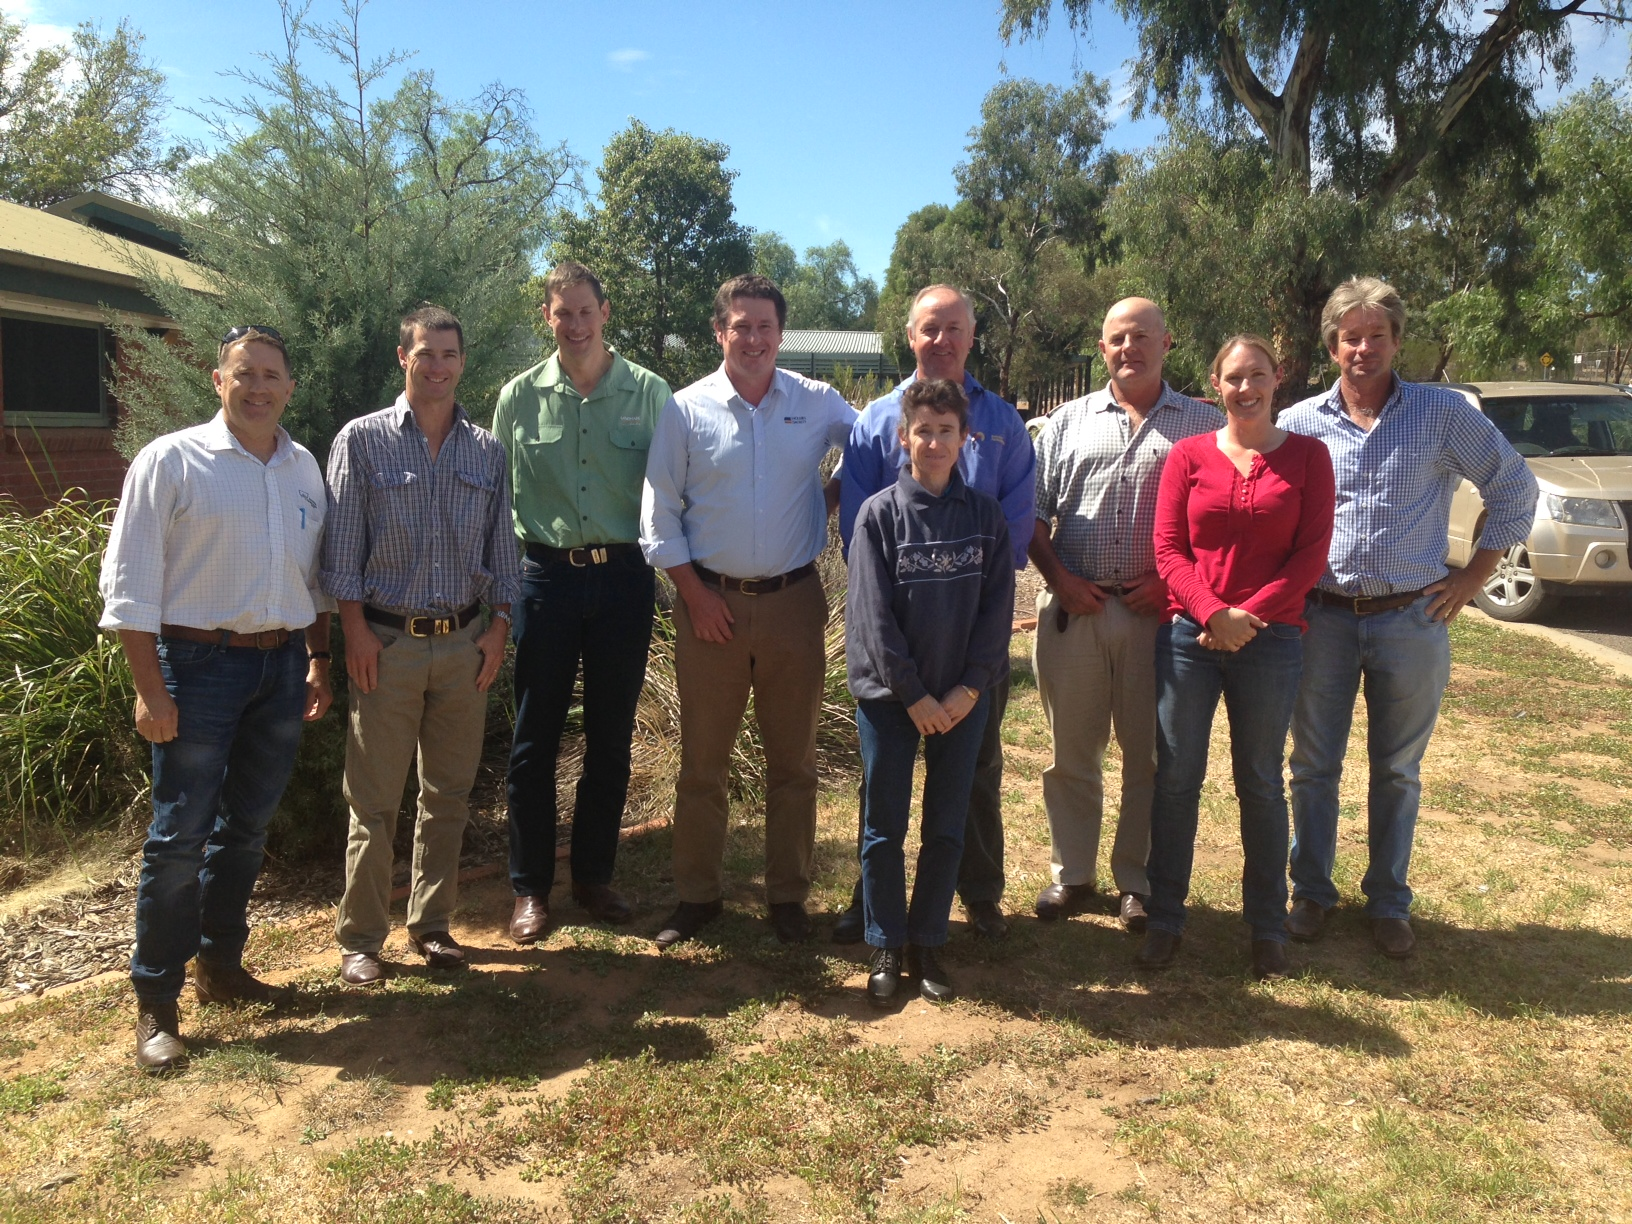 Members of the Wagga Wagga EverGraze Regional Group, March 2013